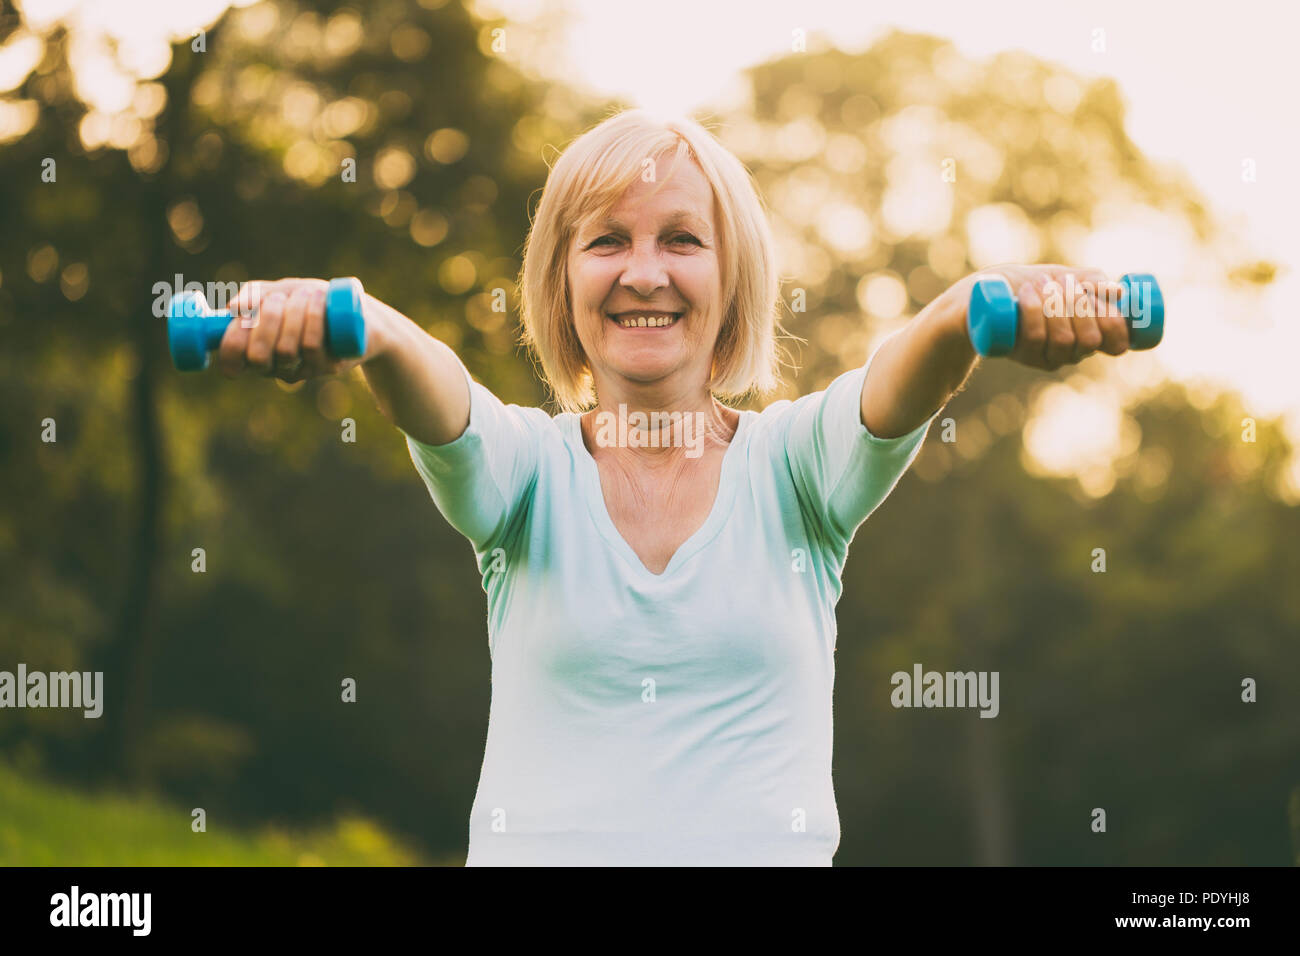 Sporty senior woman exercising with weights outdoor.Image is intentionally toned. - Stock Image